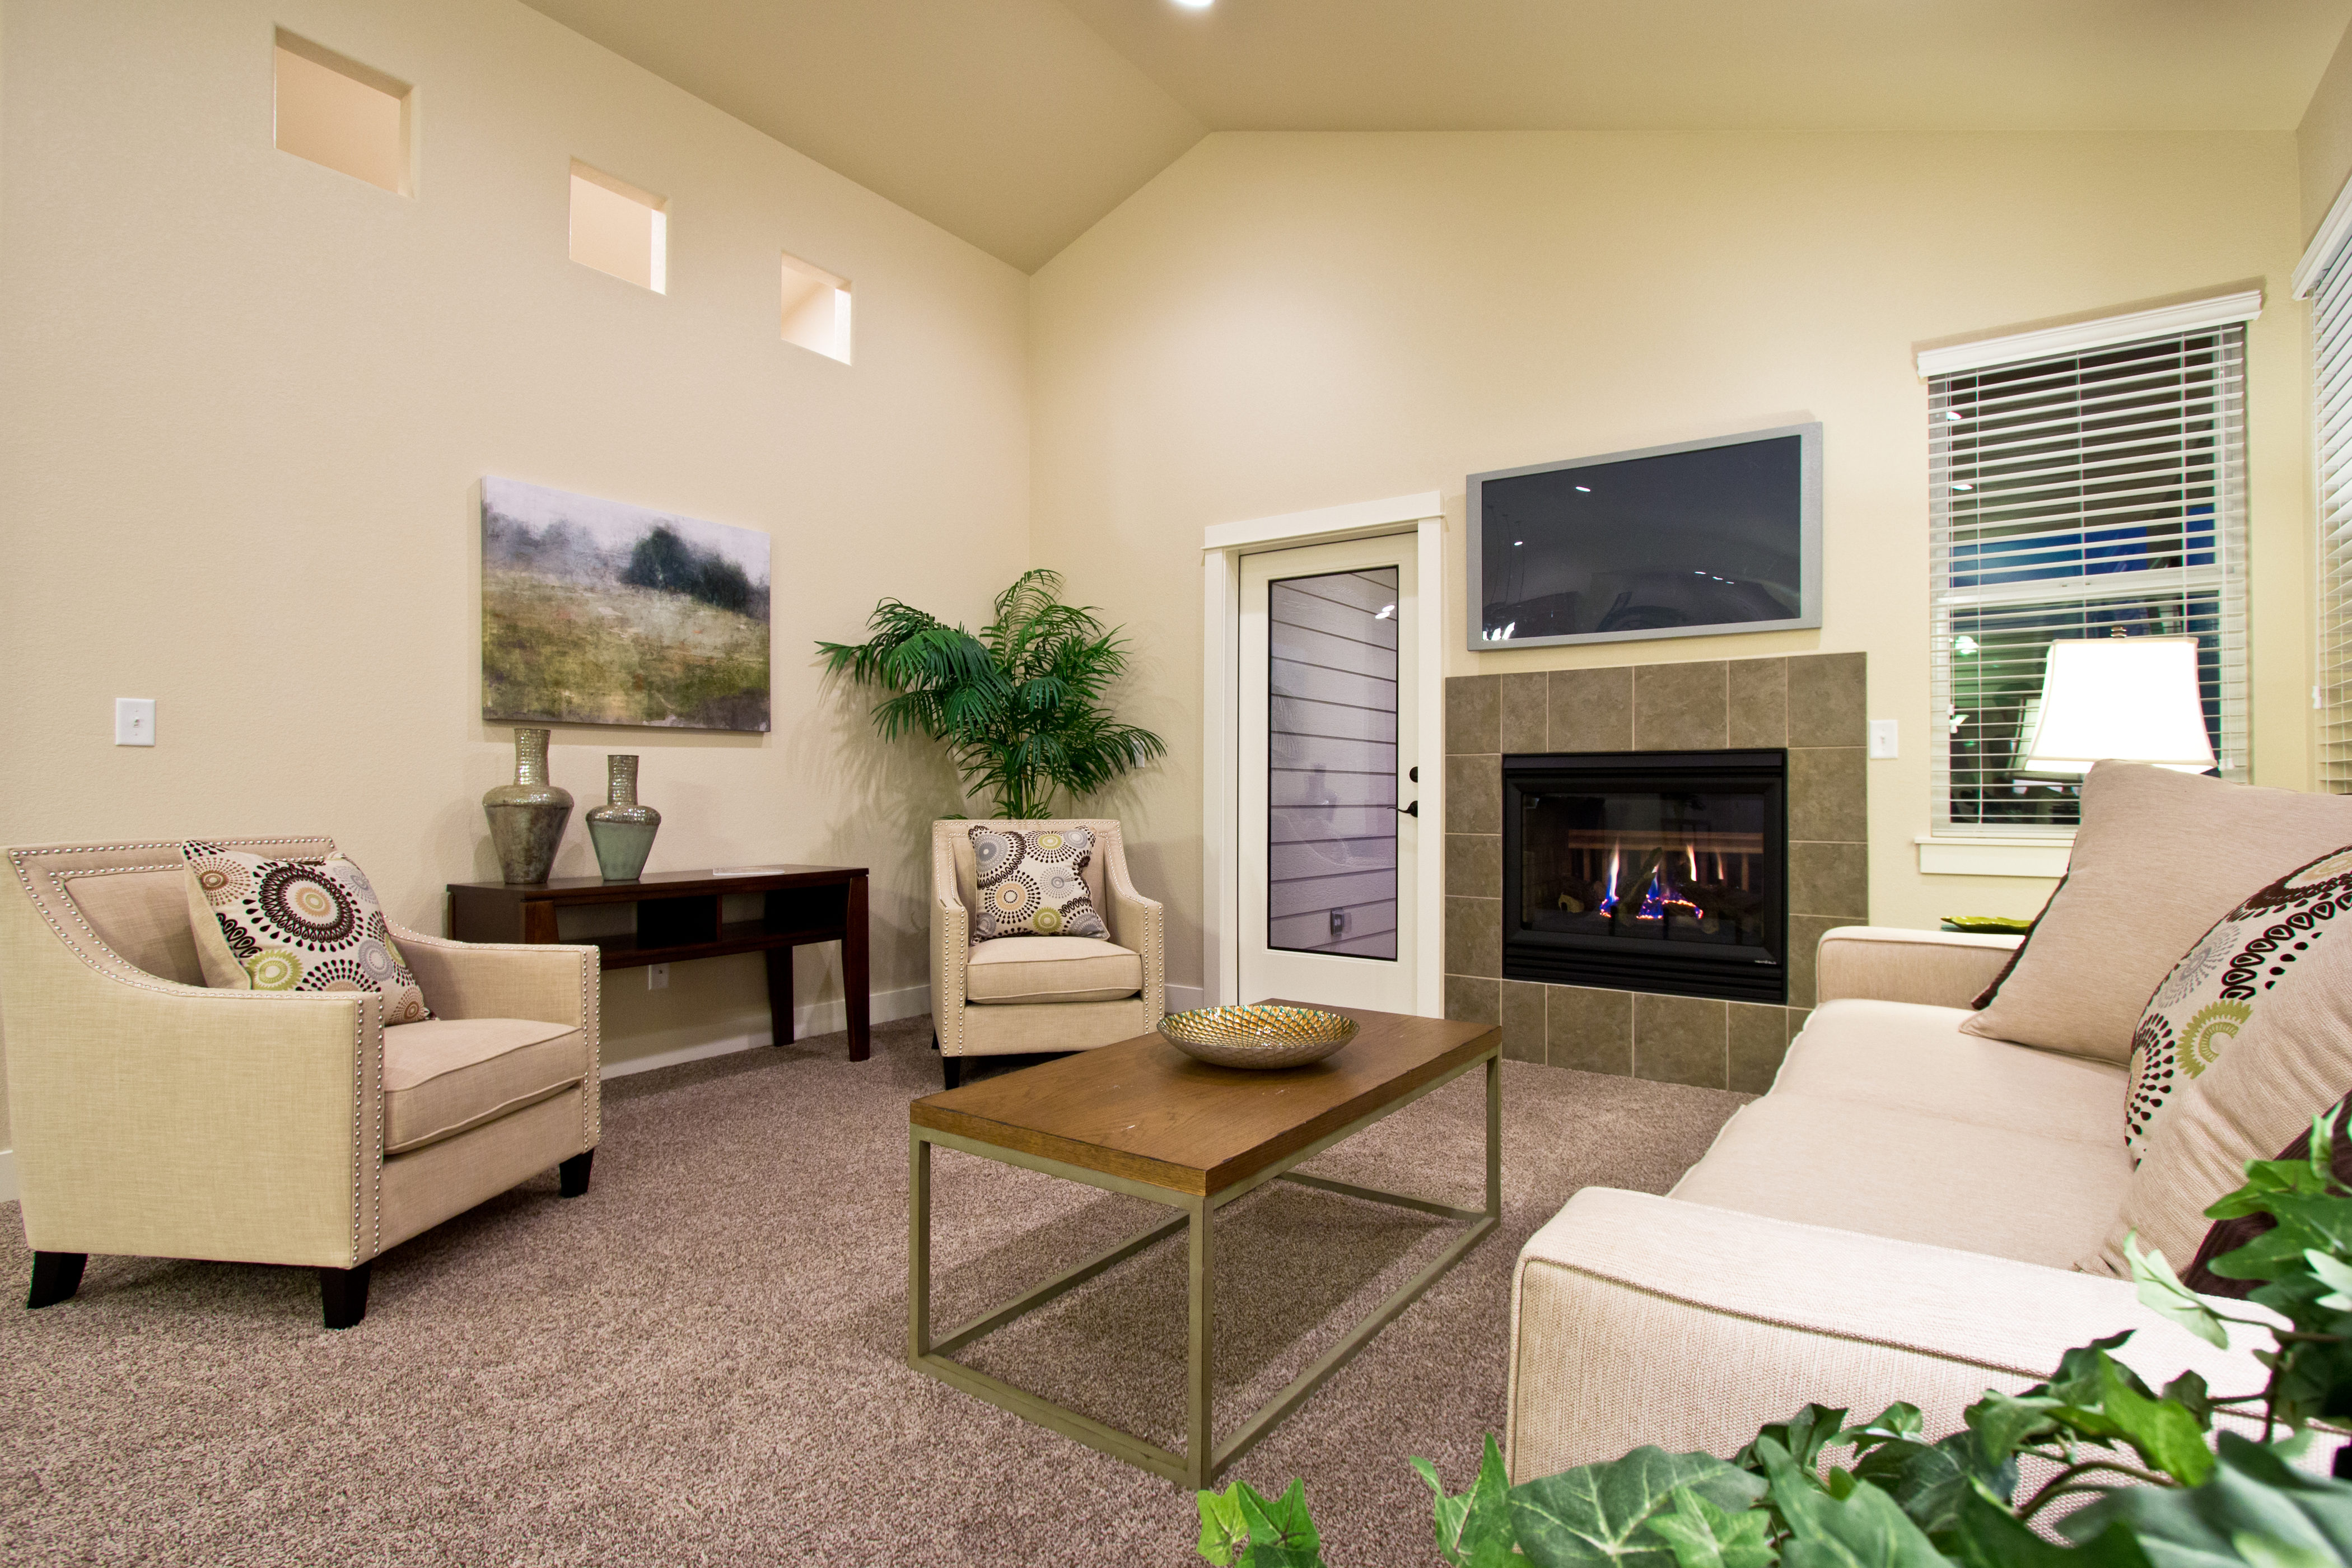 12_breckenridge_loveland_great_20room_20with_20fireplace_dream_20homes_20for_20sale